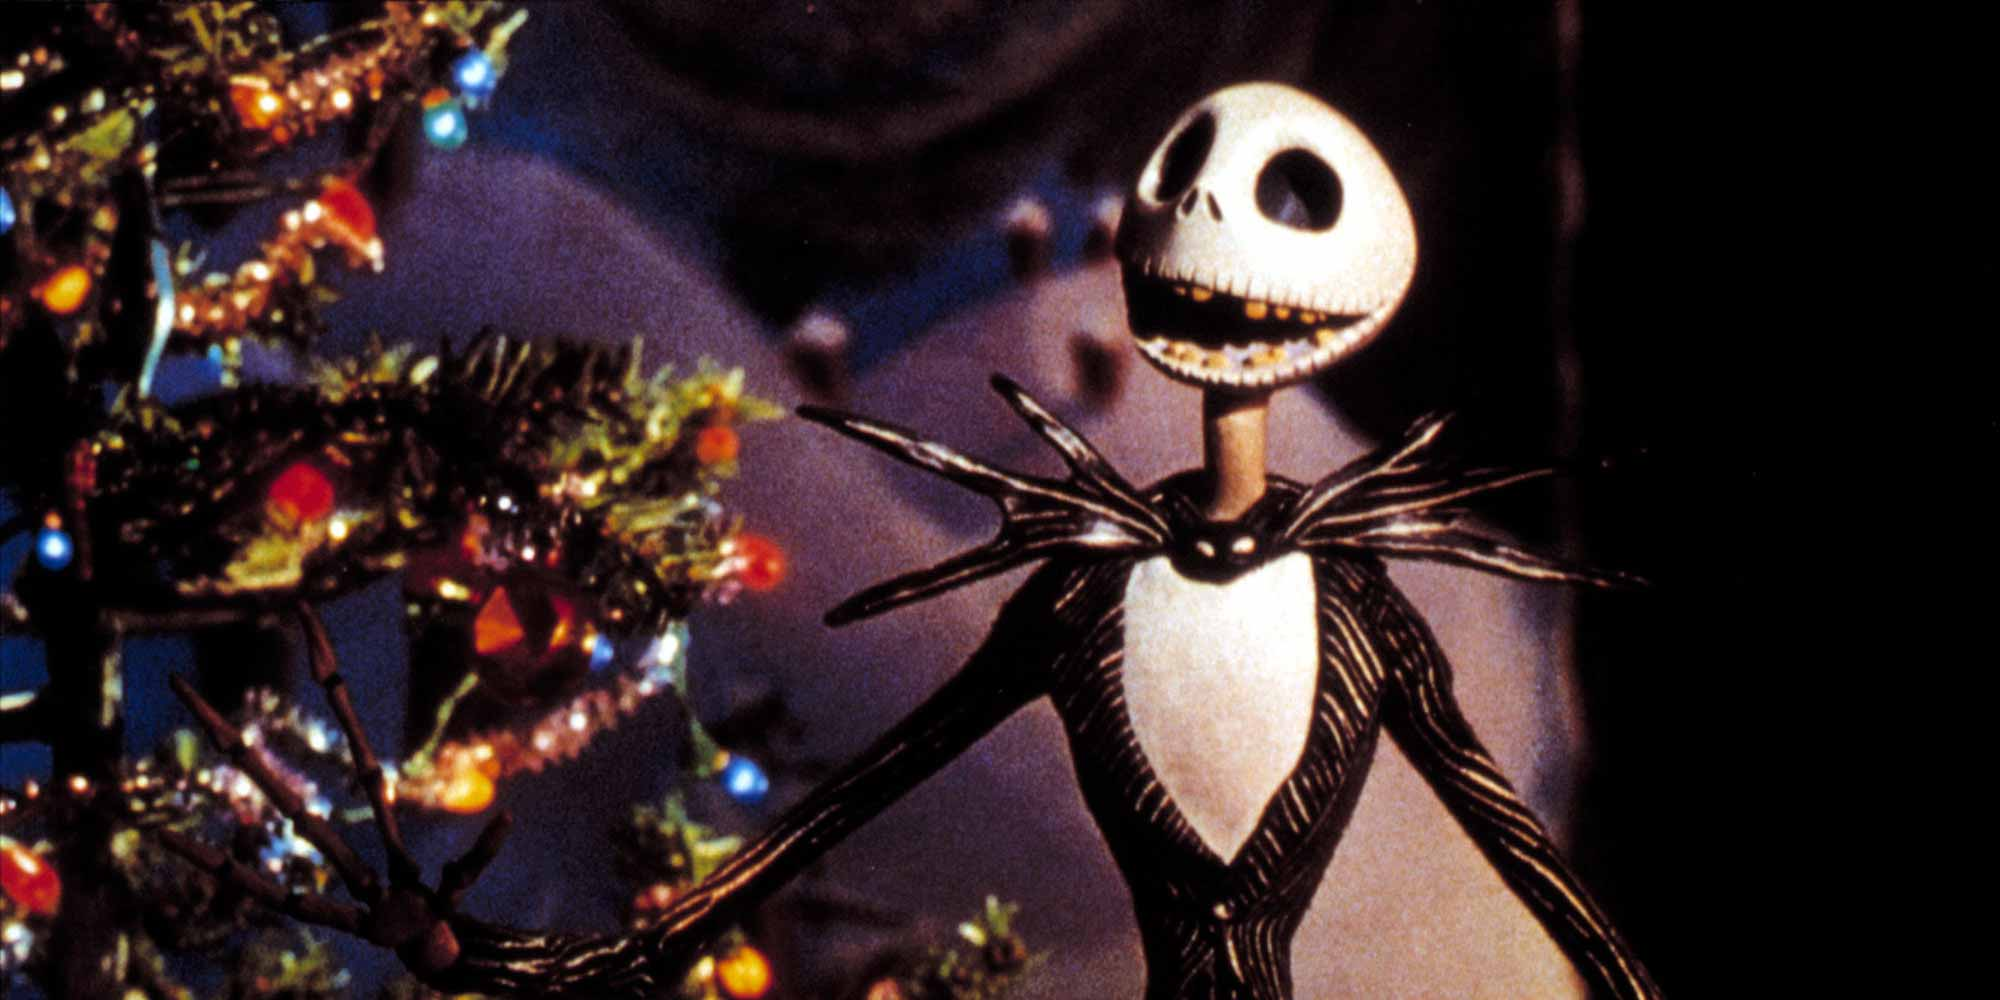 The nightmare before christmas – 10/12/16